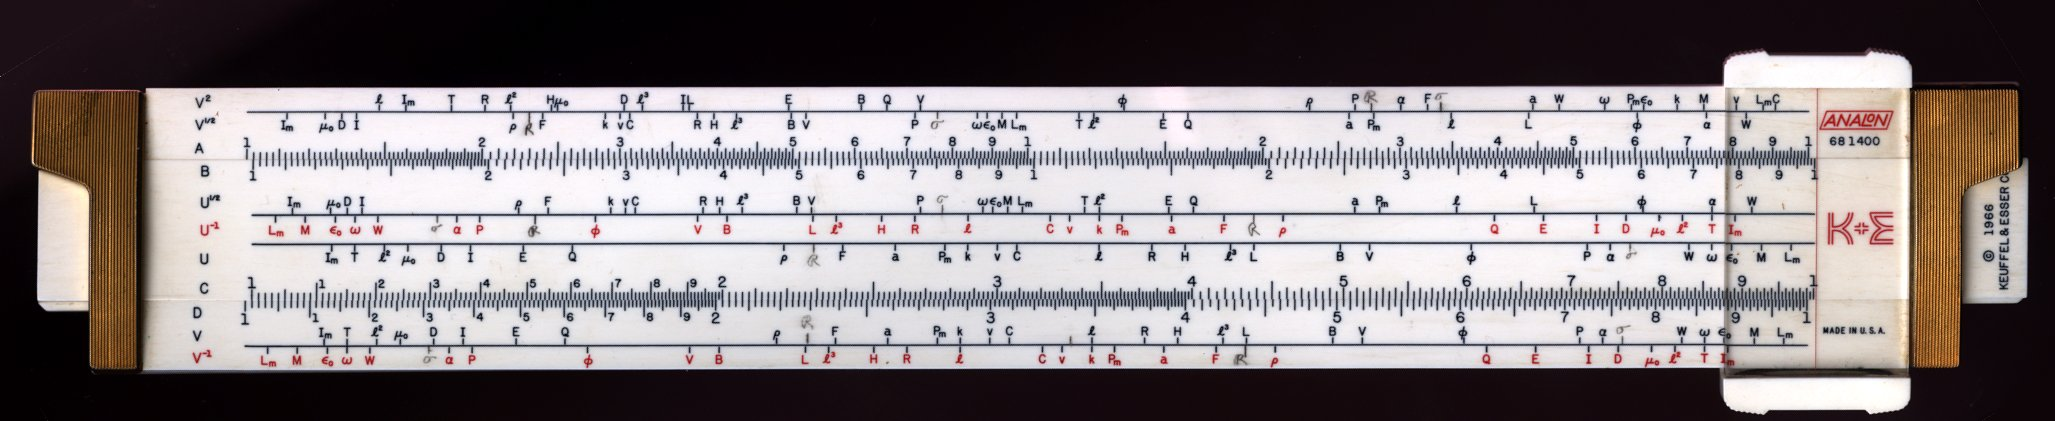 Analon slide rule - front